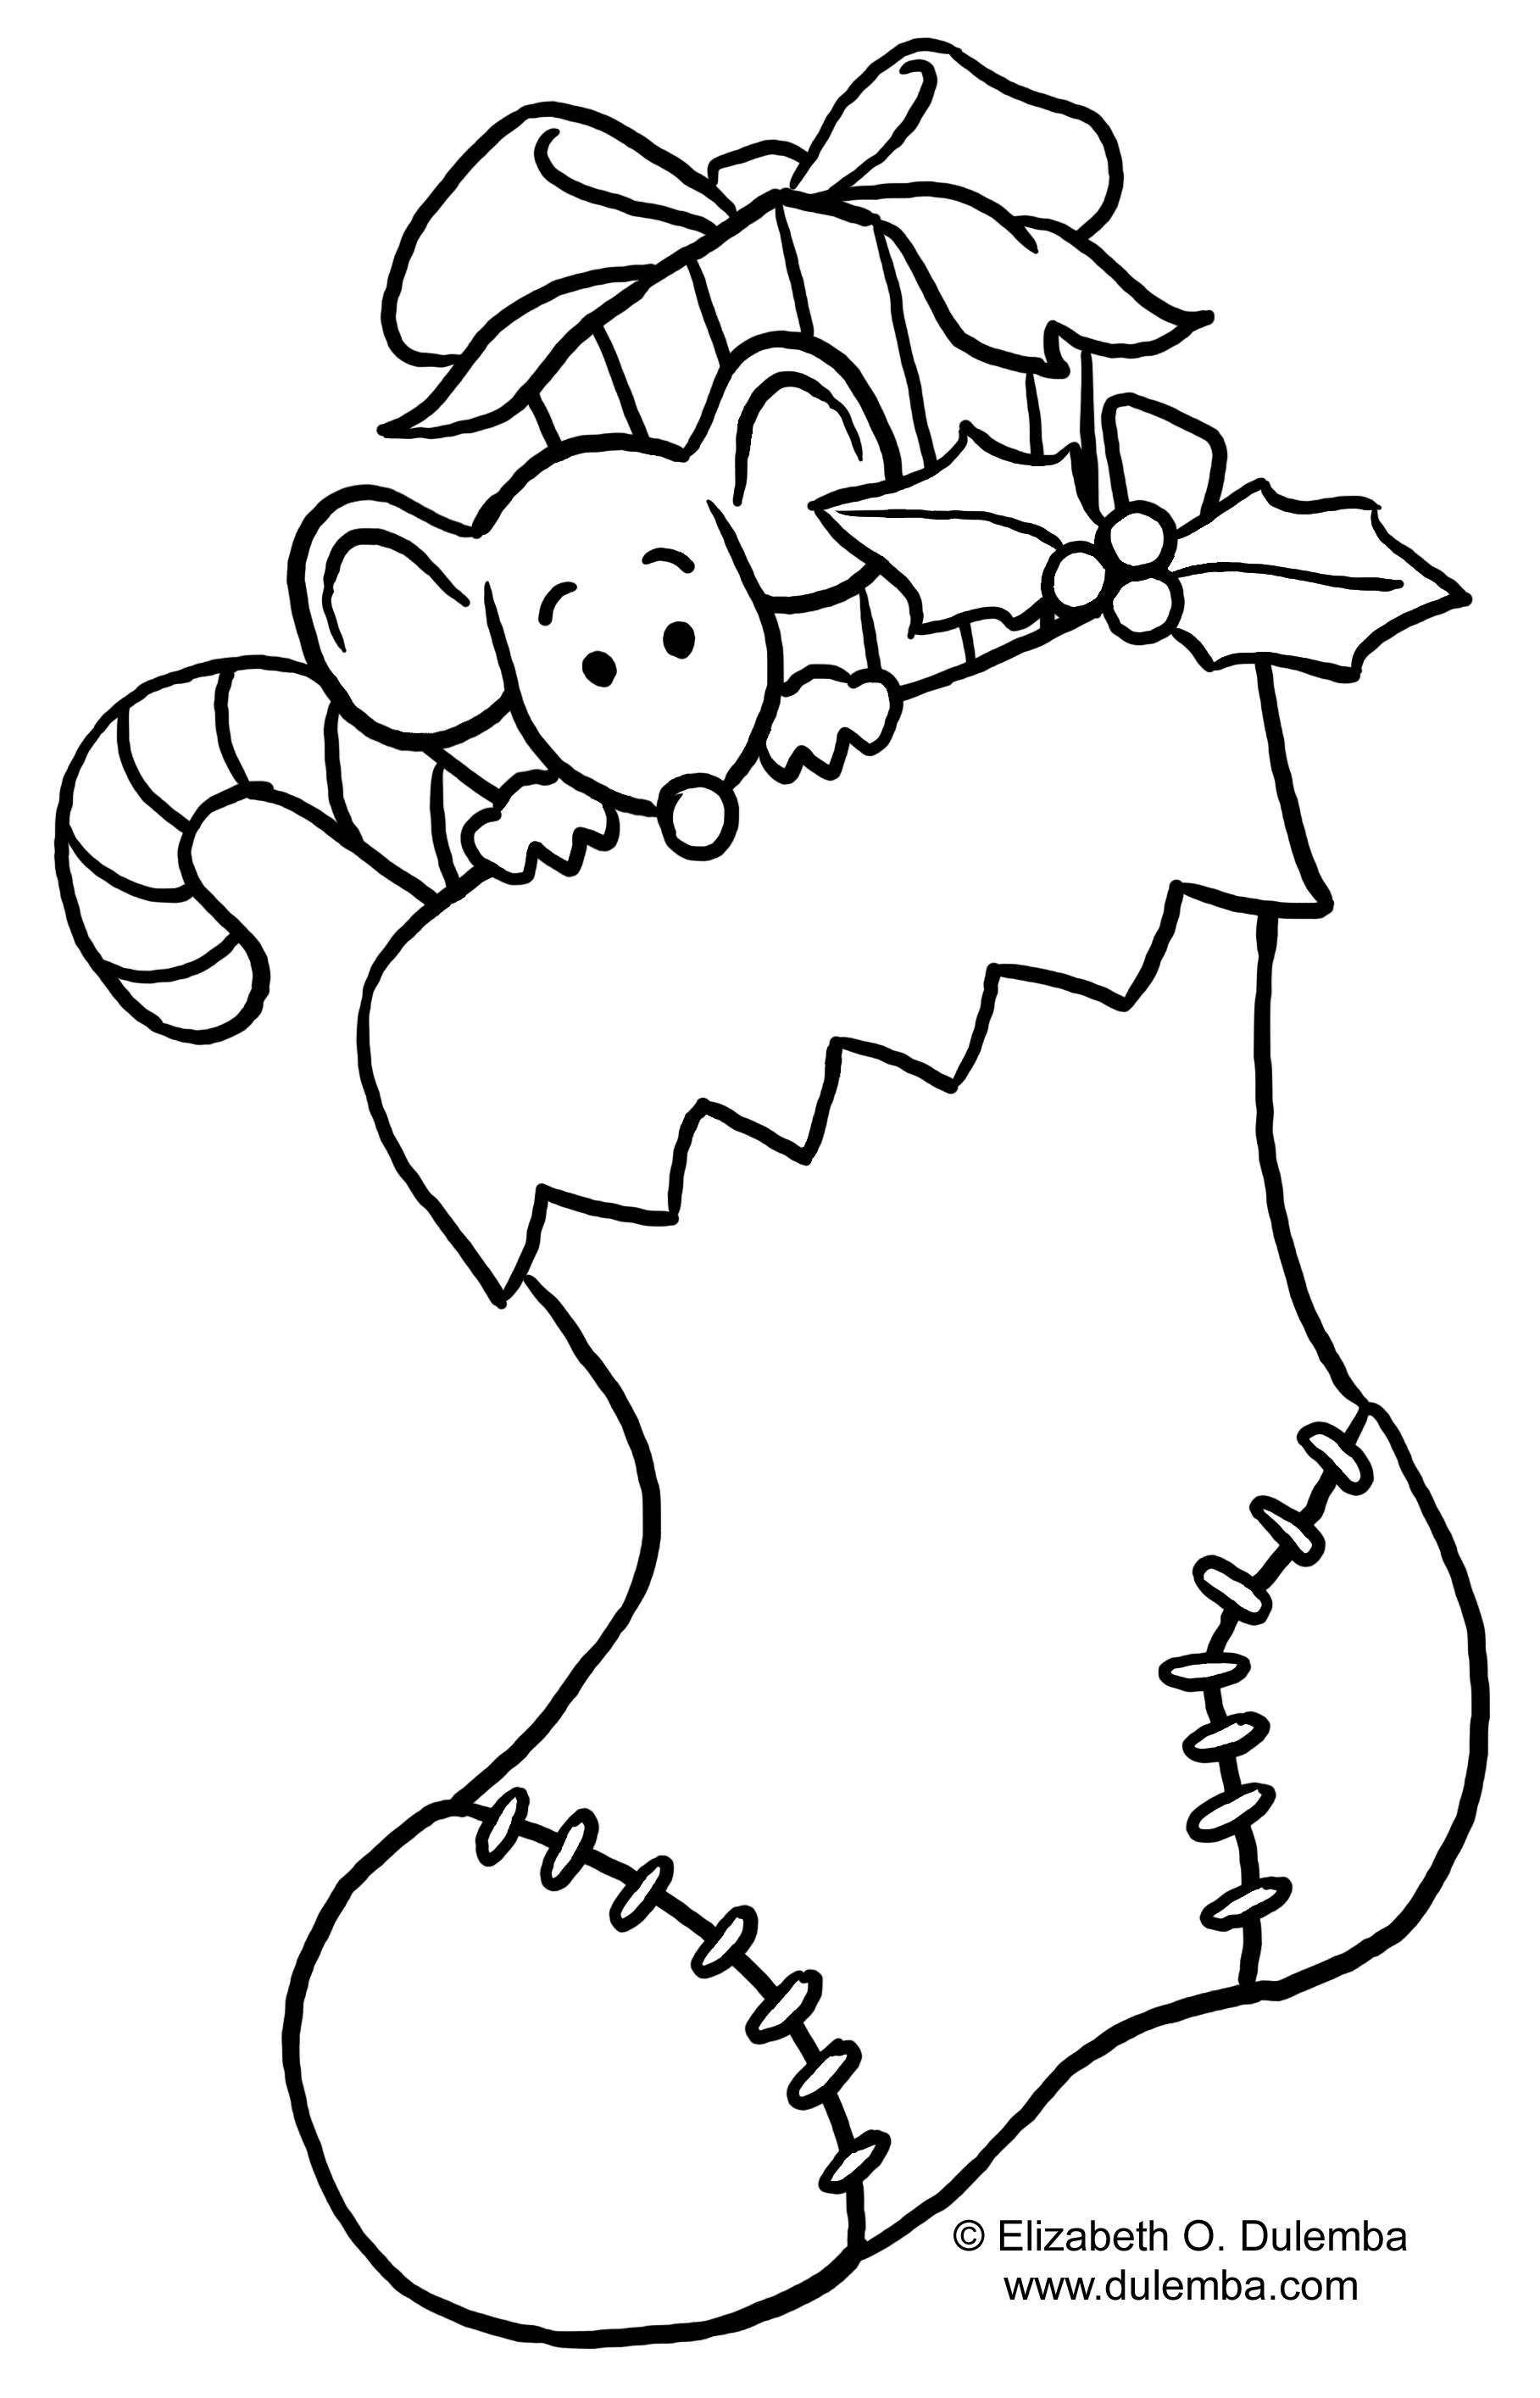 Find this pin and more on coloring pages by scrapbookmomof4